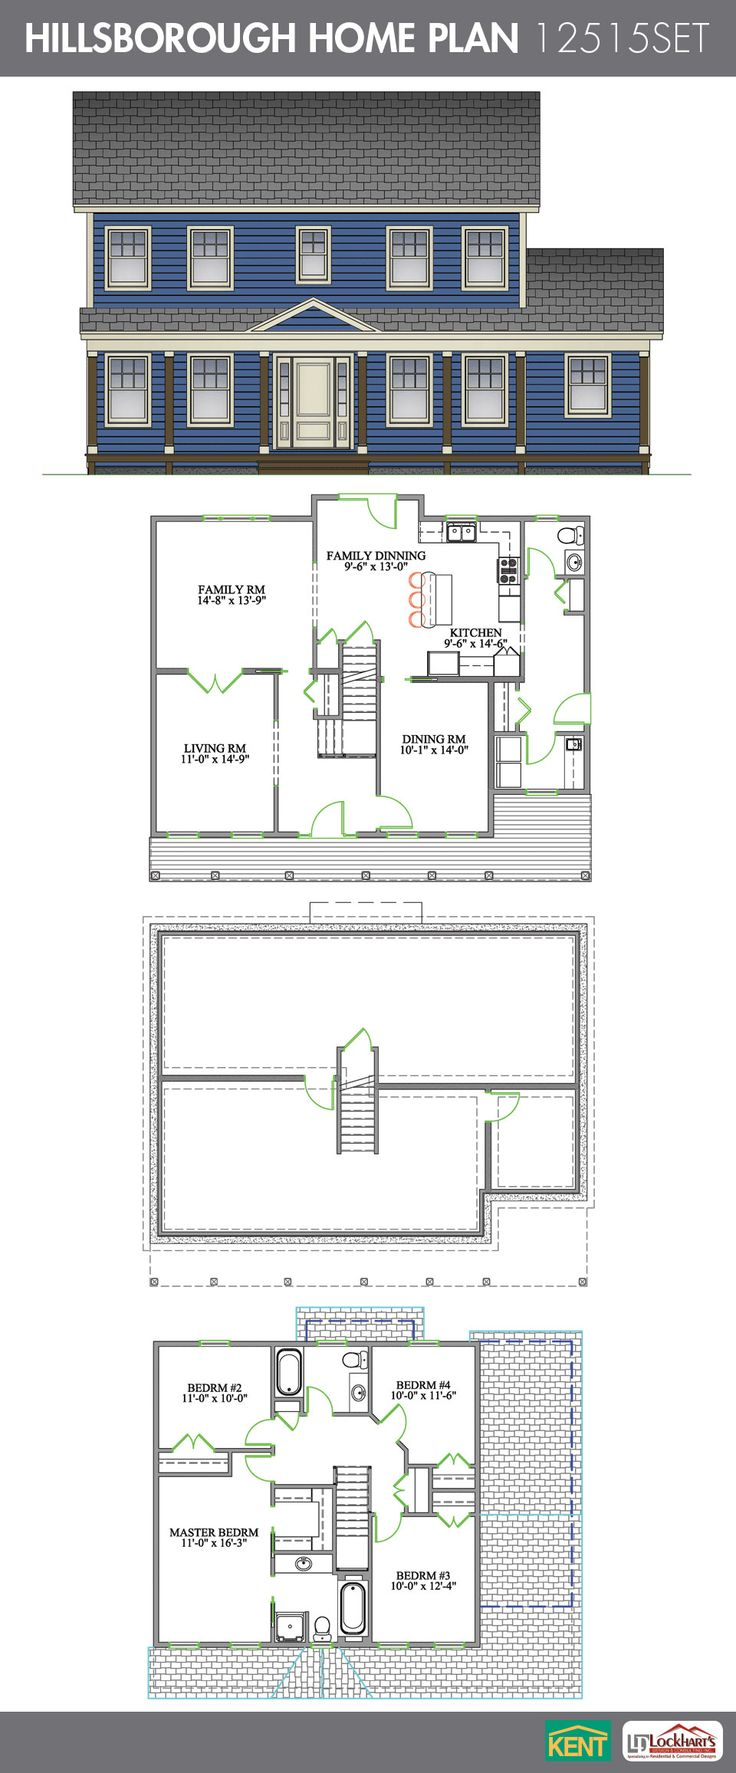 28 best 2 storey home plans images on pinterest home for House plans with eat in kitchen